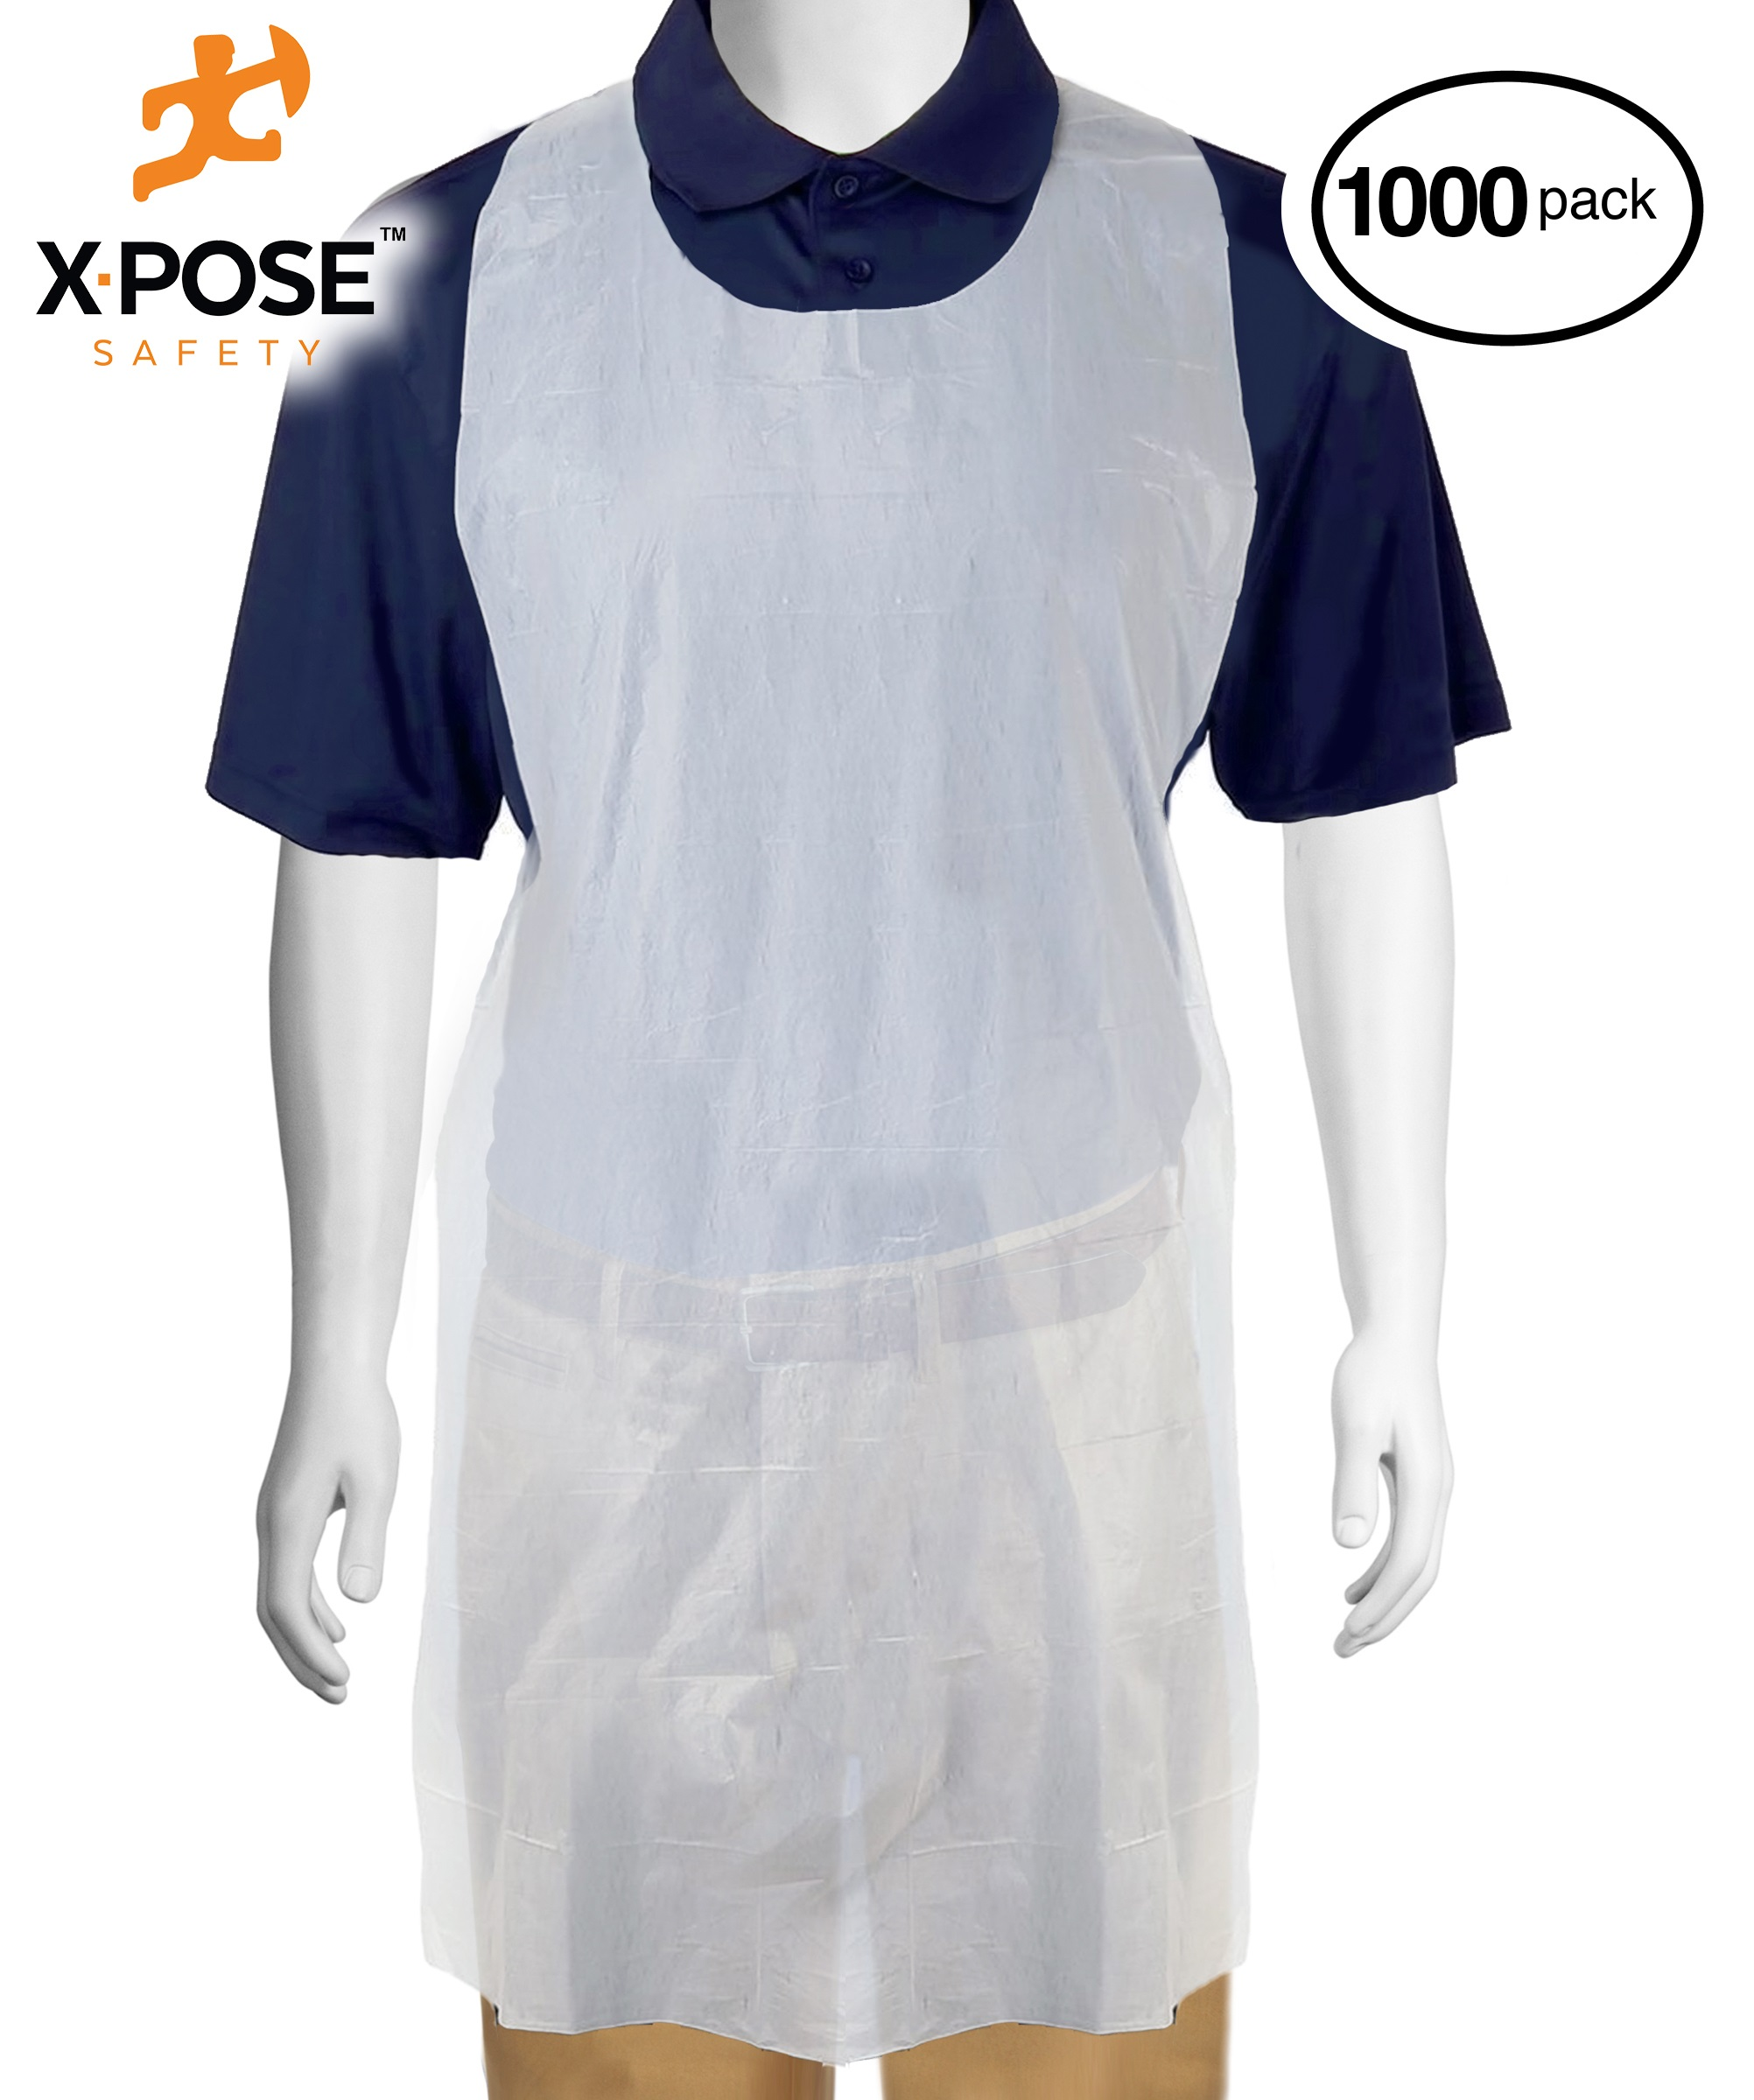 """1000 White Plastic Disposable Aprons Individually Packaged - Durable 1 mil Waterproof Polyethylene - 24"""" x 42"""" AP100-10-X"""